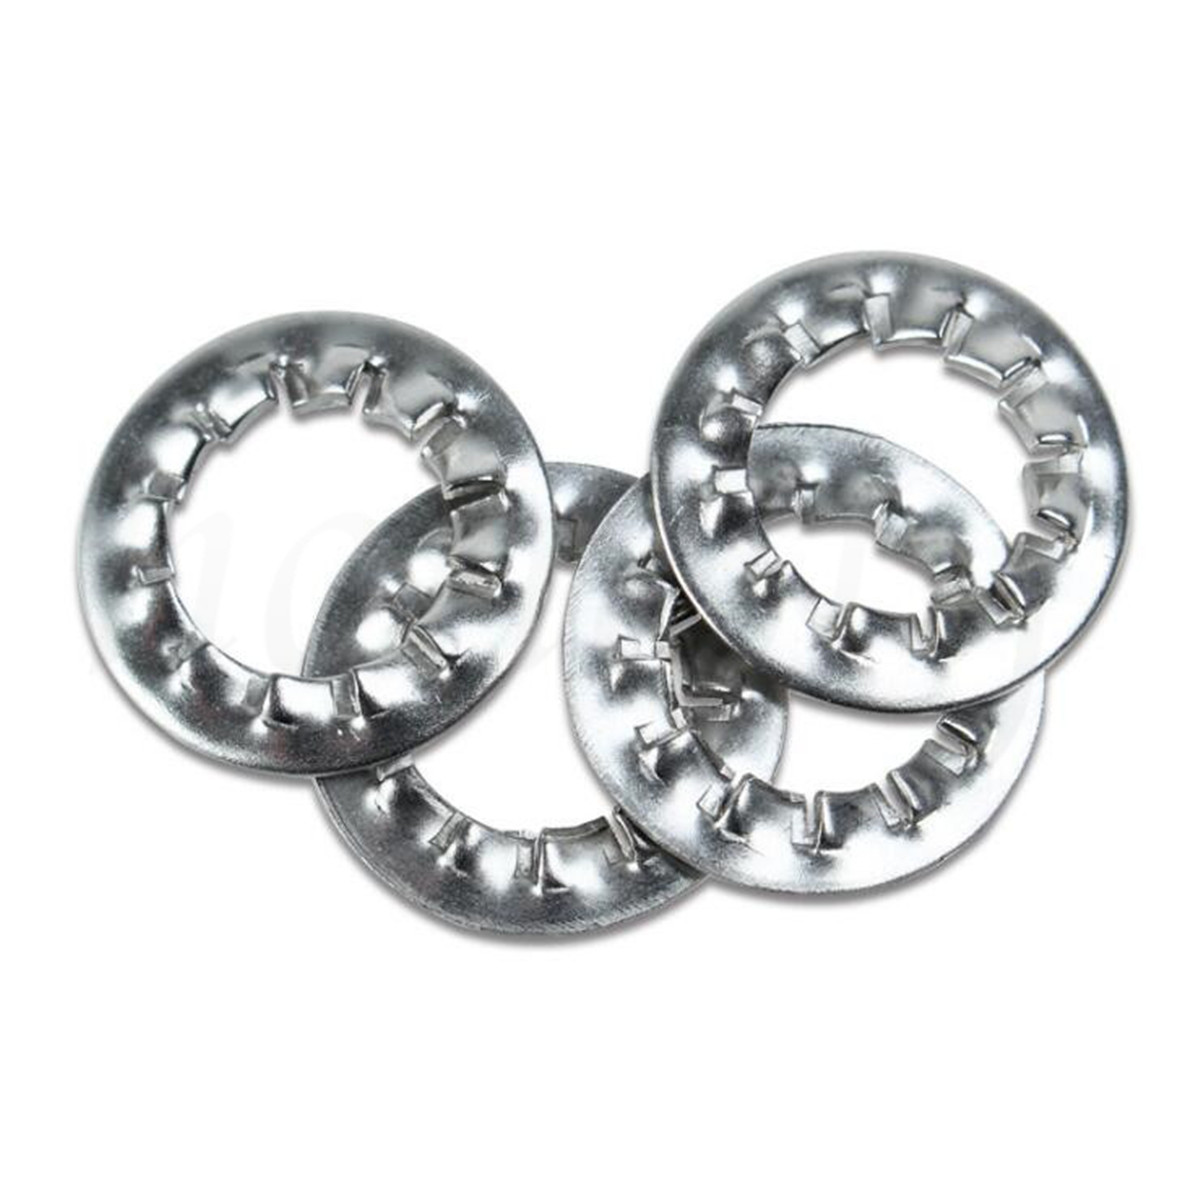 304 Stainless Steel Shakeproof Serrated Lock Washer